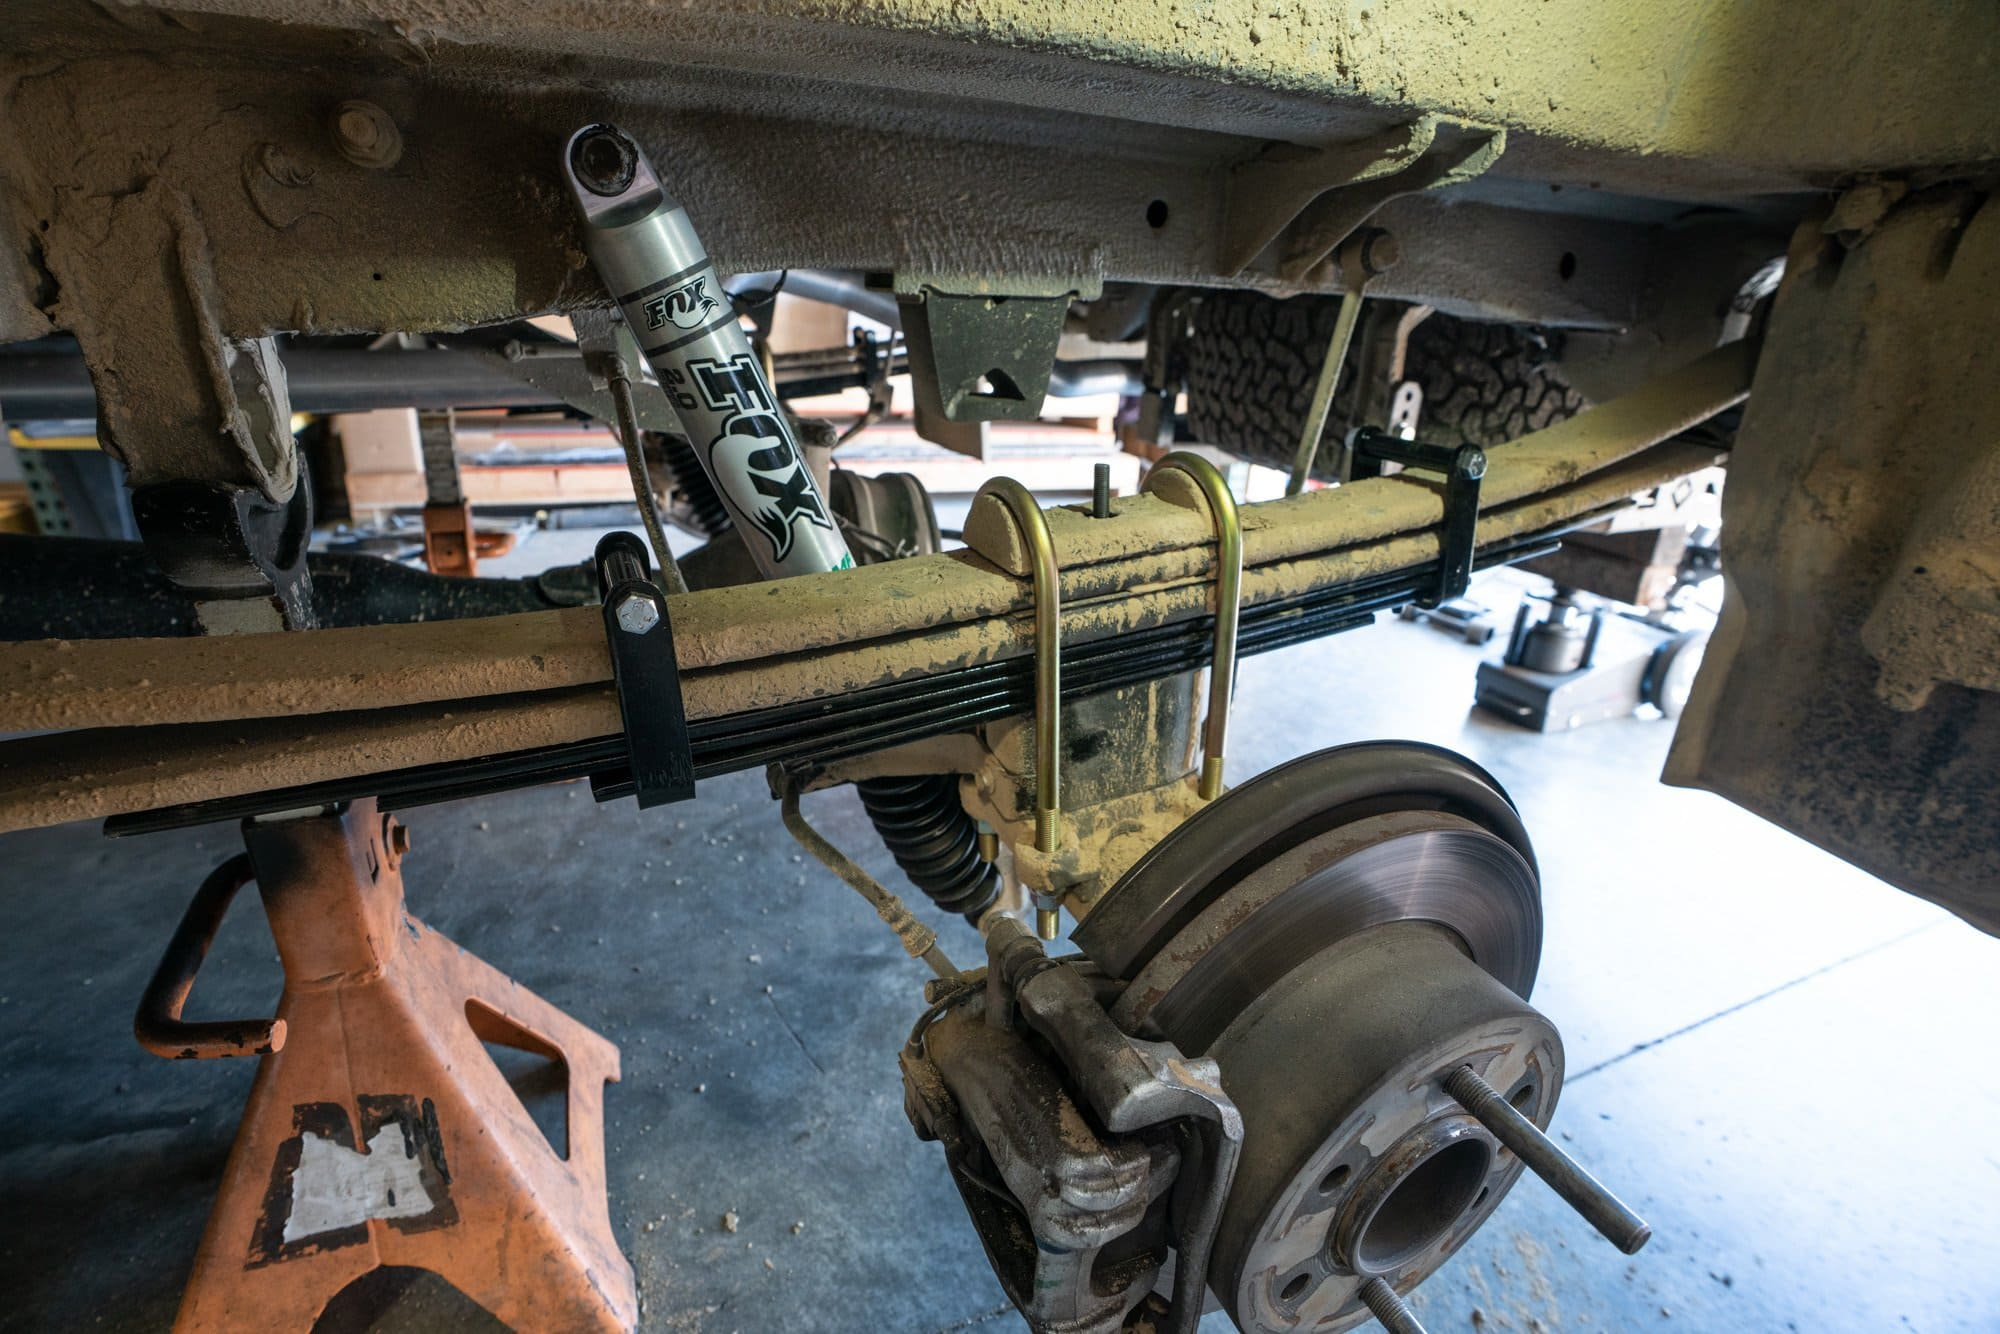 Upgrading the suspension in your Sprinter Van can result in a smoother ride and more control. Get my review of Van Compass's front and rear suspension kits.